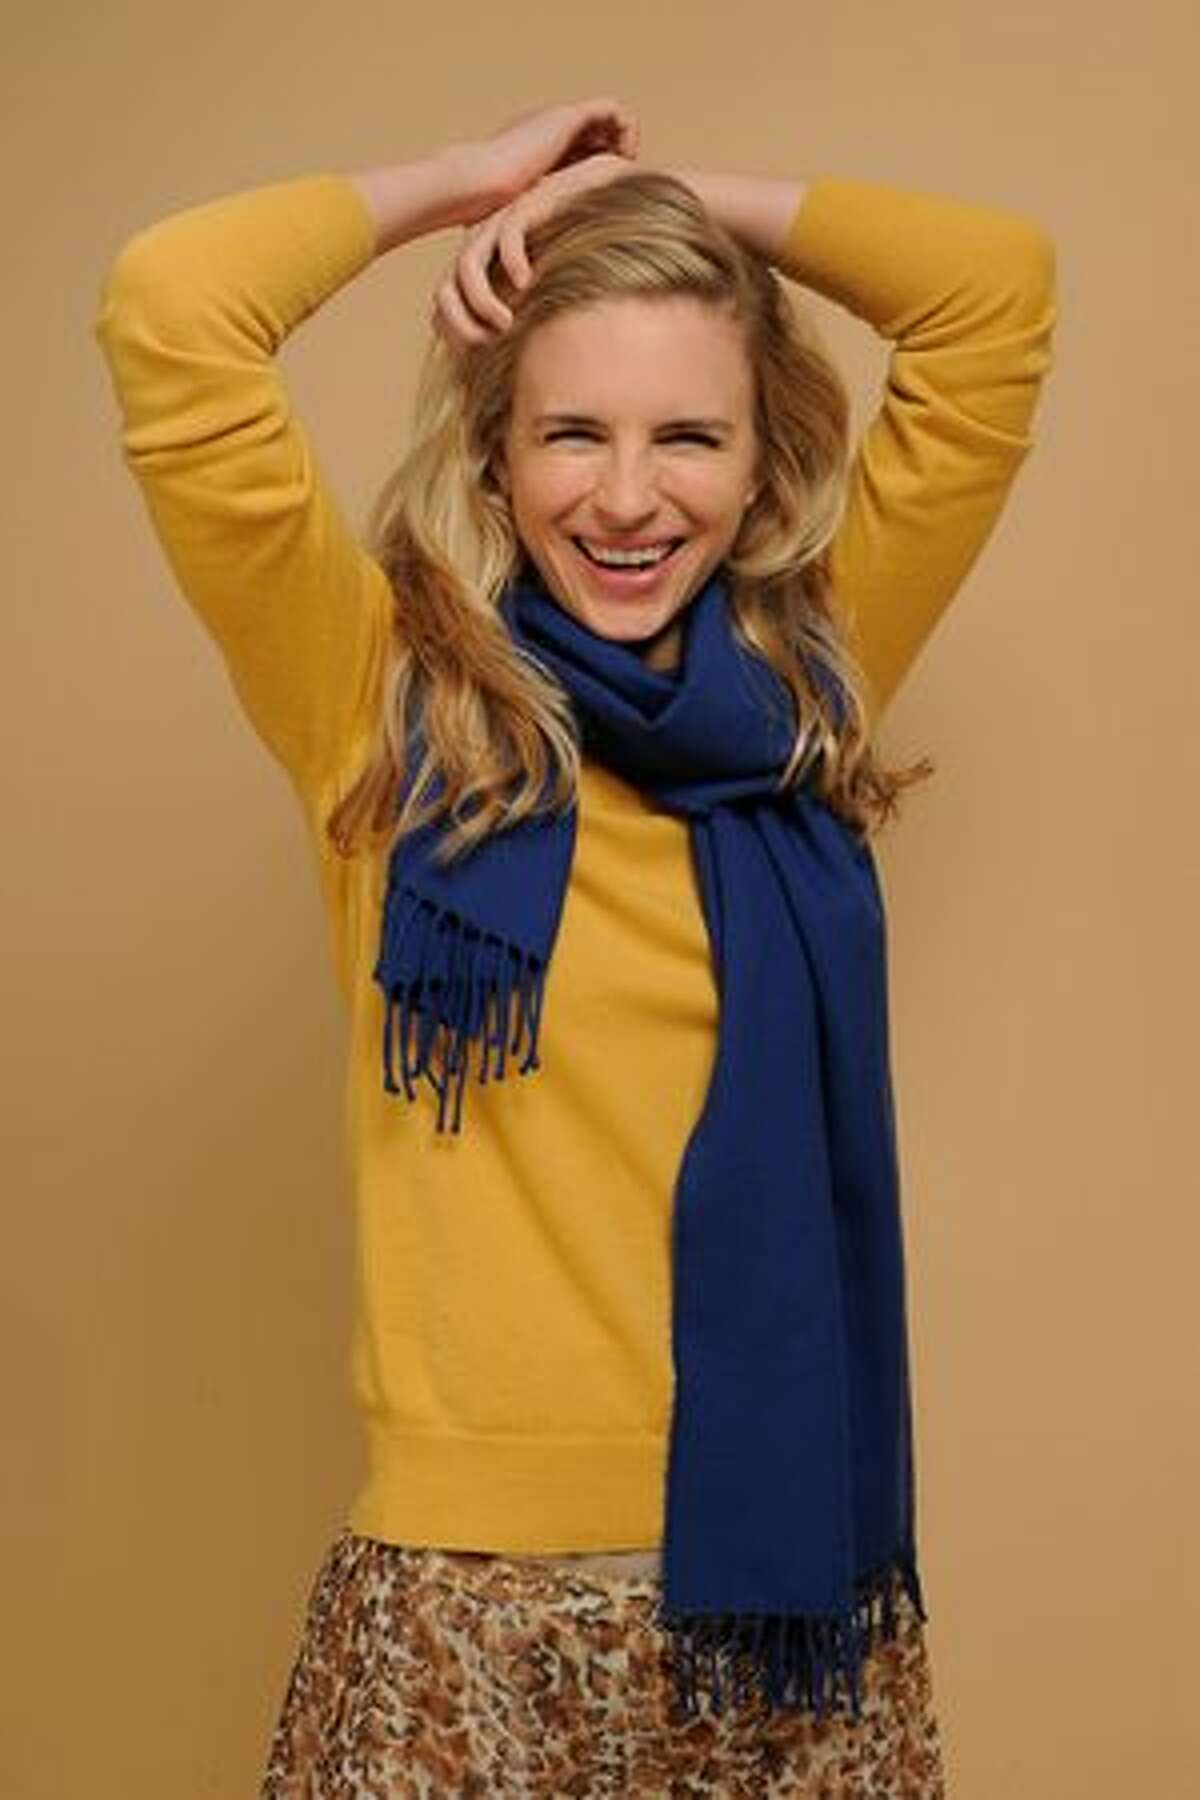 Writer Brit Marling poses for a portrait during the 2011 Sundance Film Festival at The Samsung Galaxy Tab Lift on January 25, 2011 in Park City, Utah.